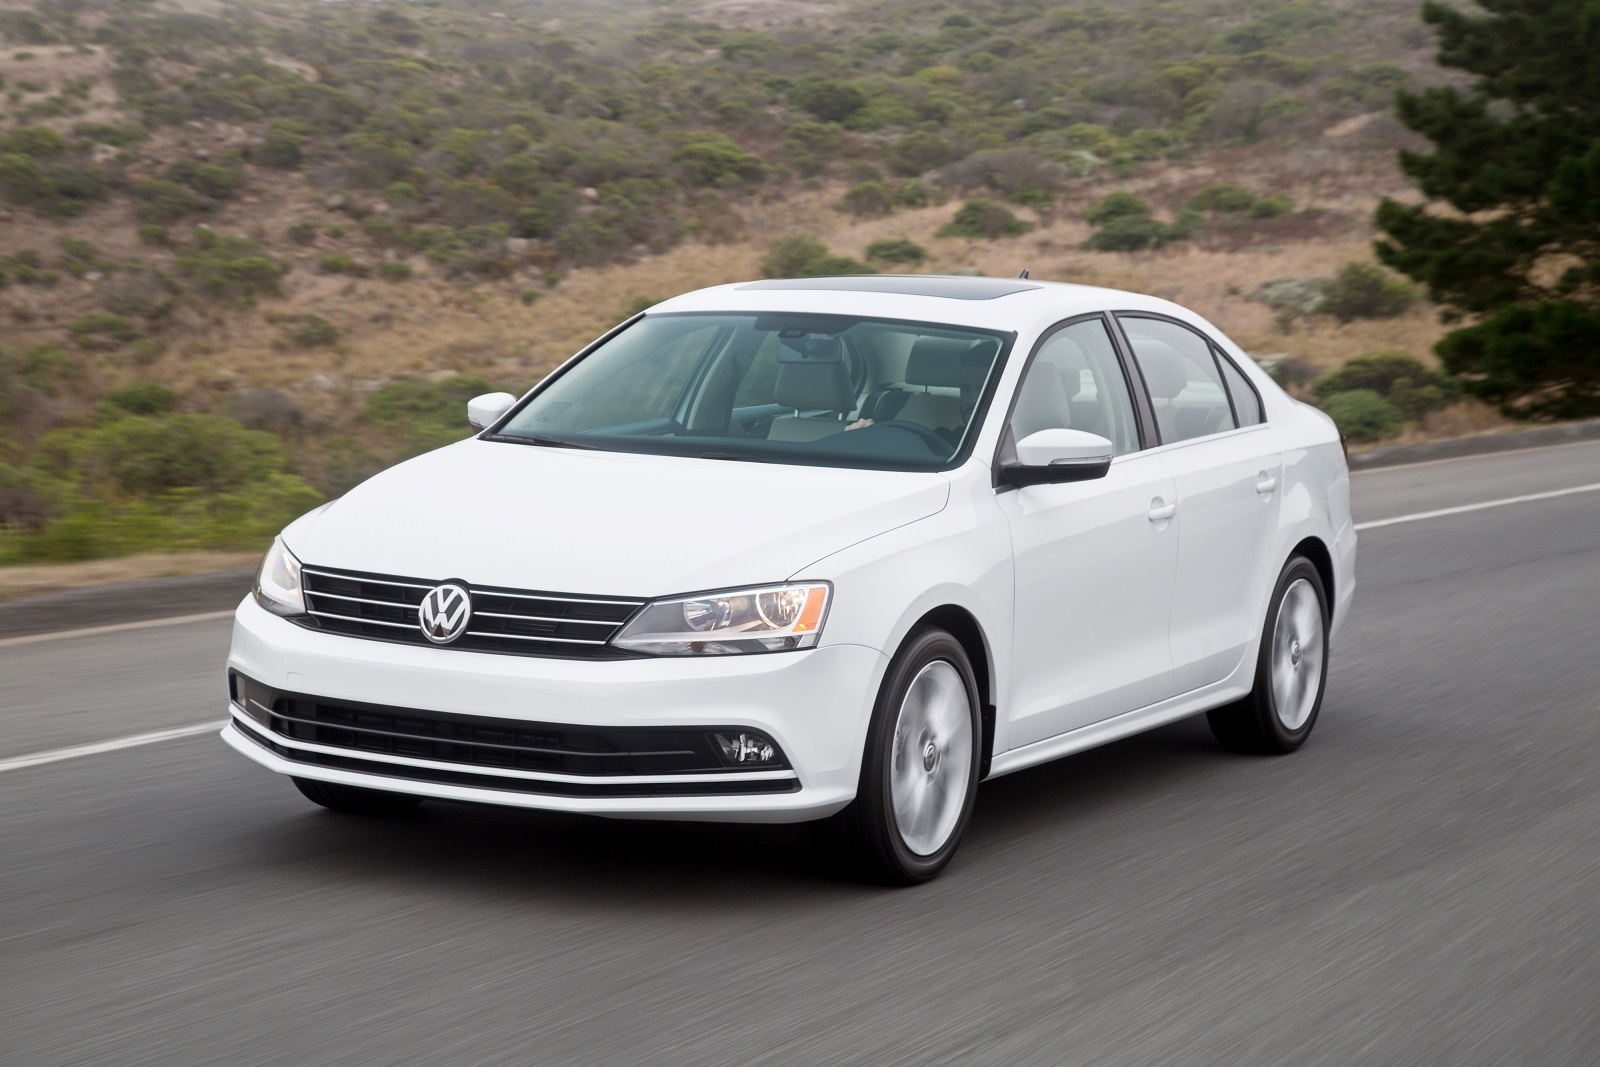 2016 Volkswagen Jetta Vw Safety Review And Crash Test